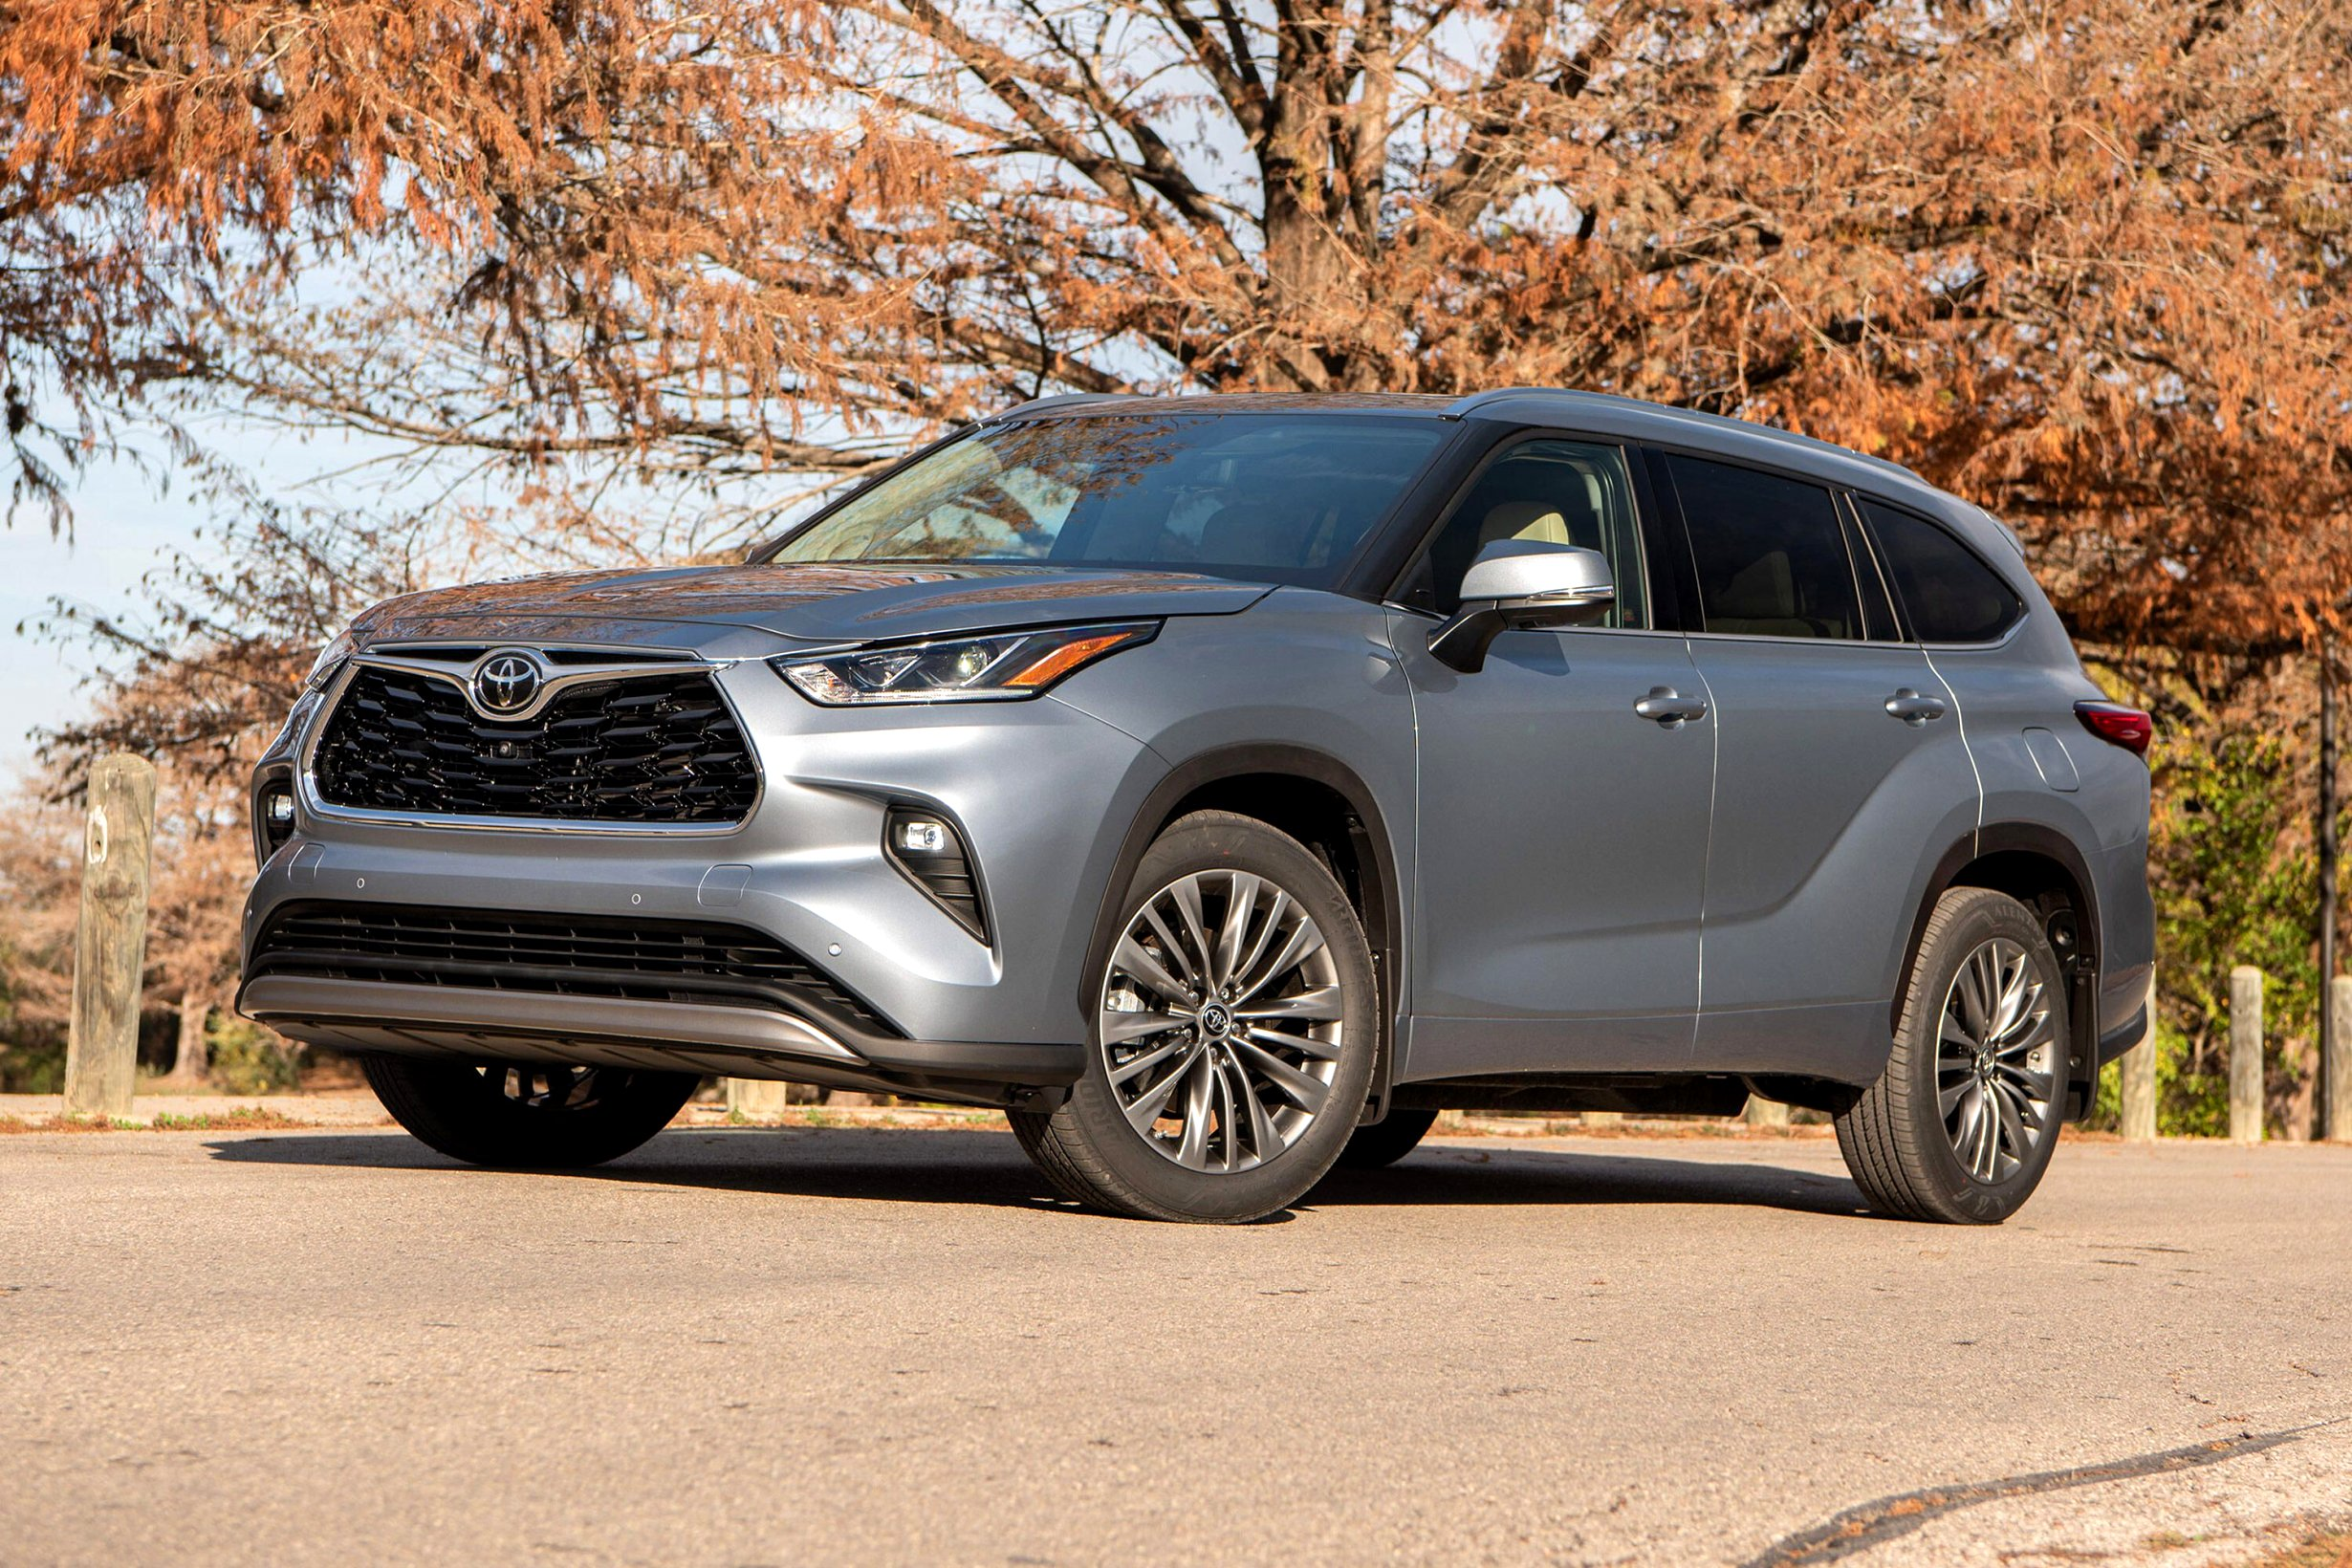 2020 toyota highlander review Performance